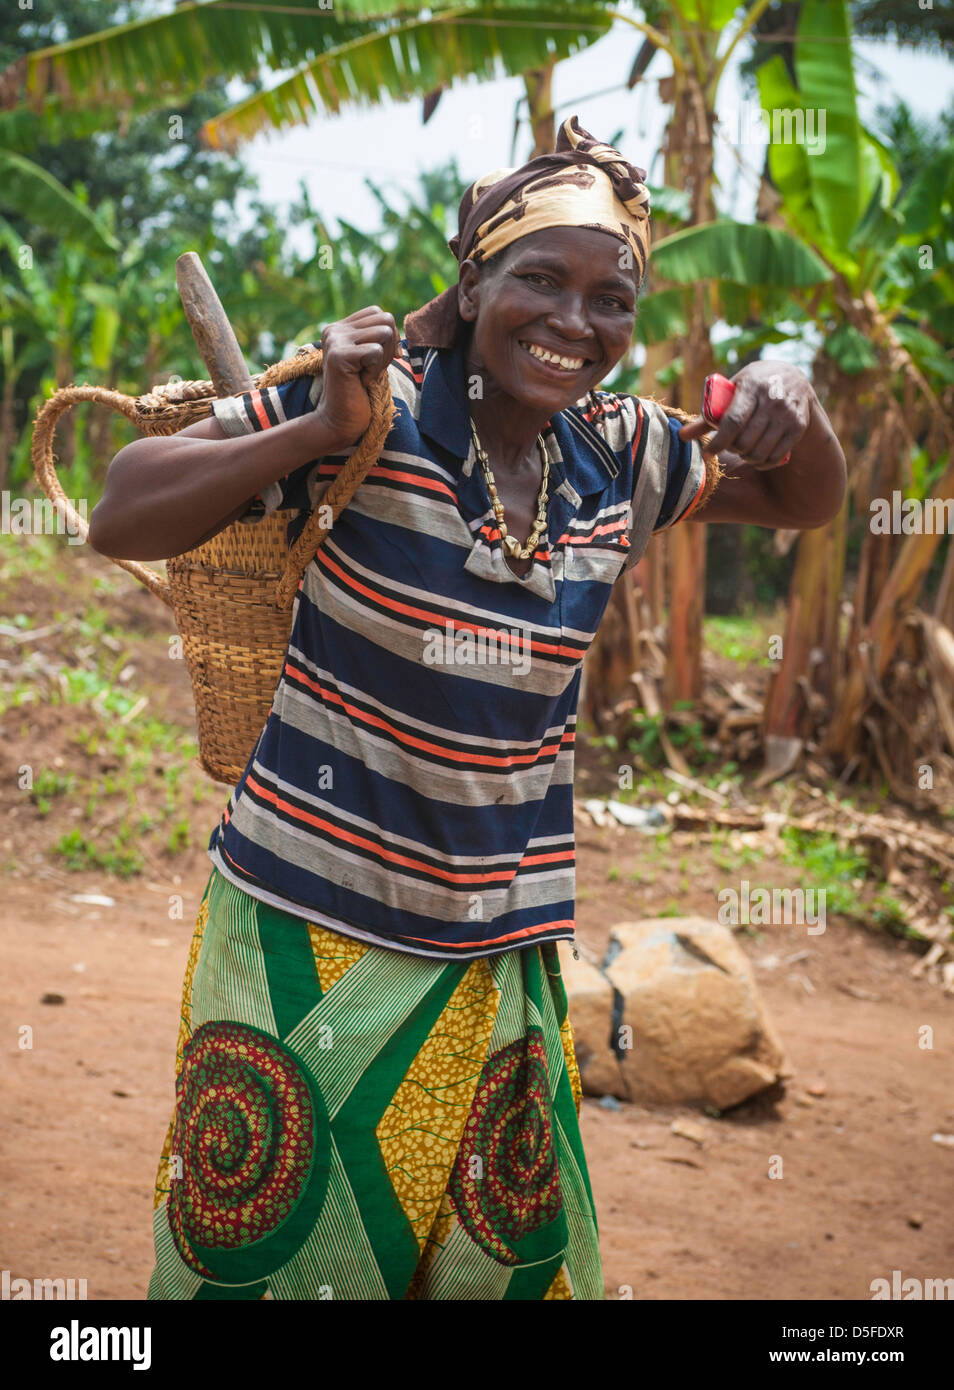 African woman carrying basket as she goes to the field in Cameroon to work - Stock Image